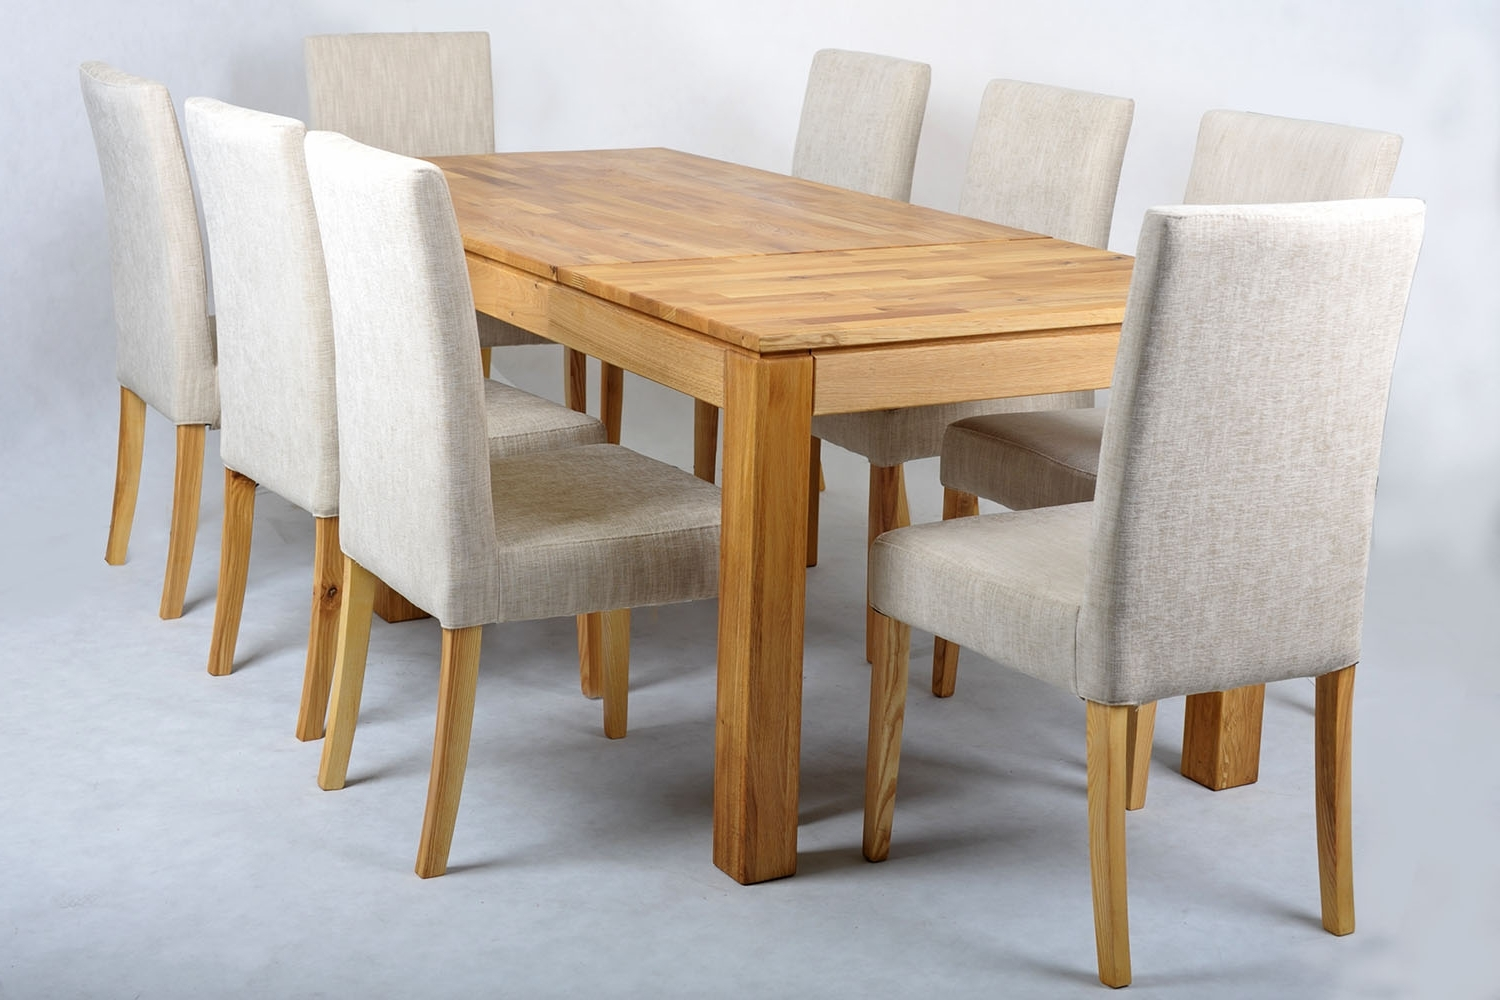 Extending Dining Table Sets Uk, Extended Dining Table Sets For Most Up To Date Oak Extending Dining Tables And 6 Chairs (View 21 of 25)